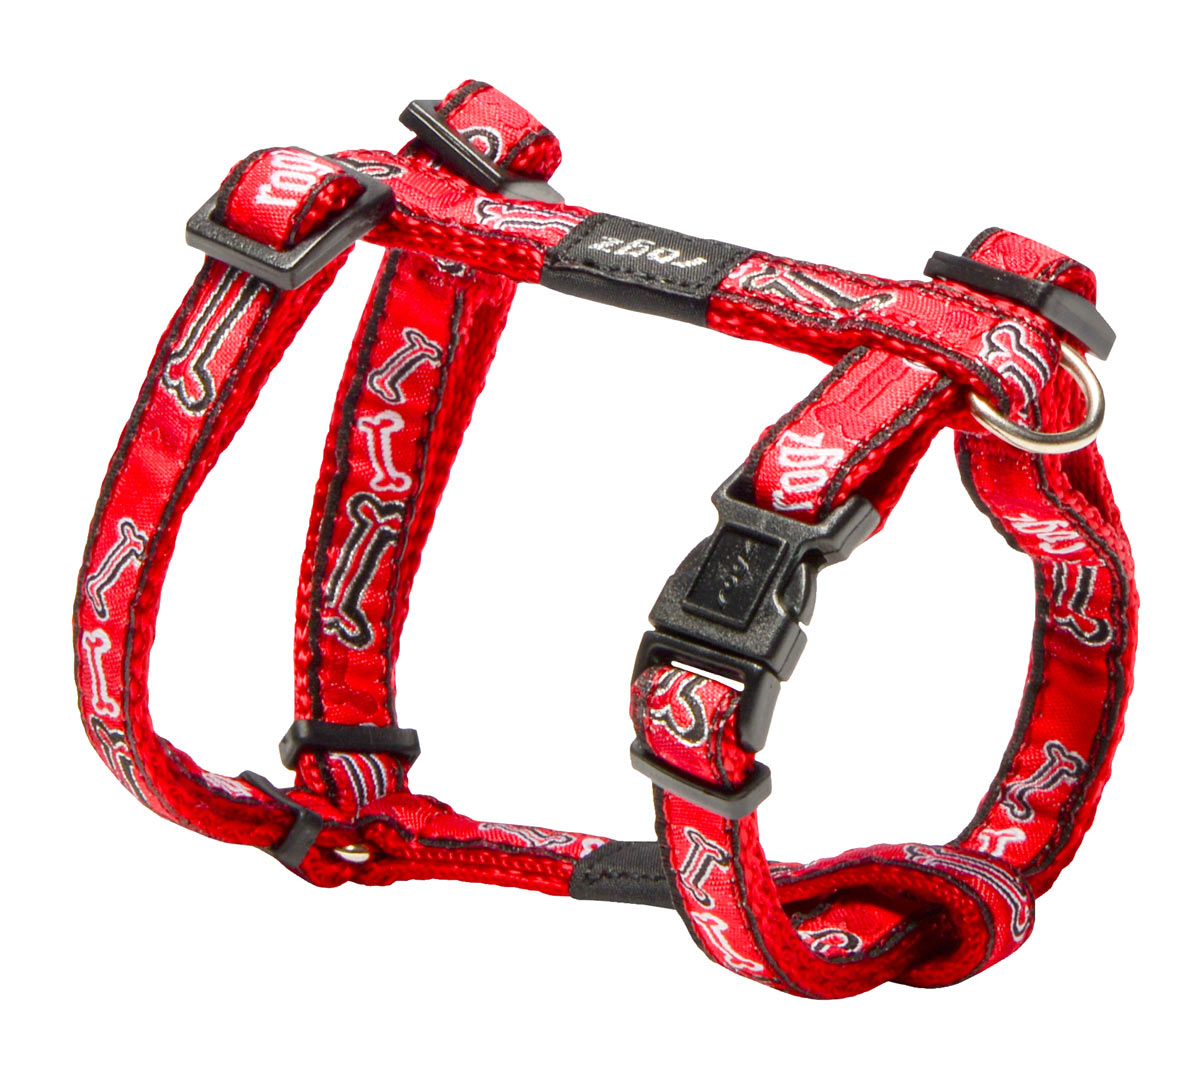 Fancy Dress Harness - Red Bones